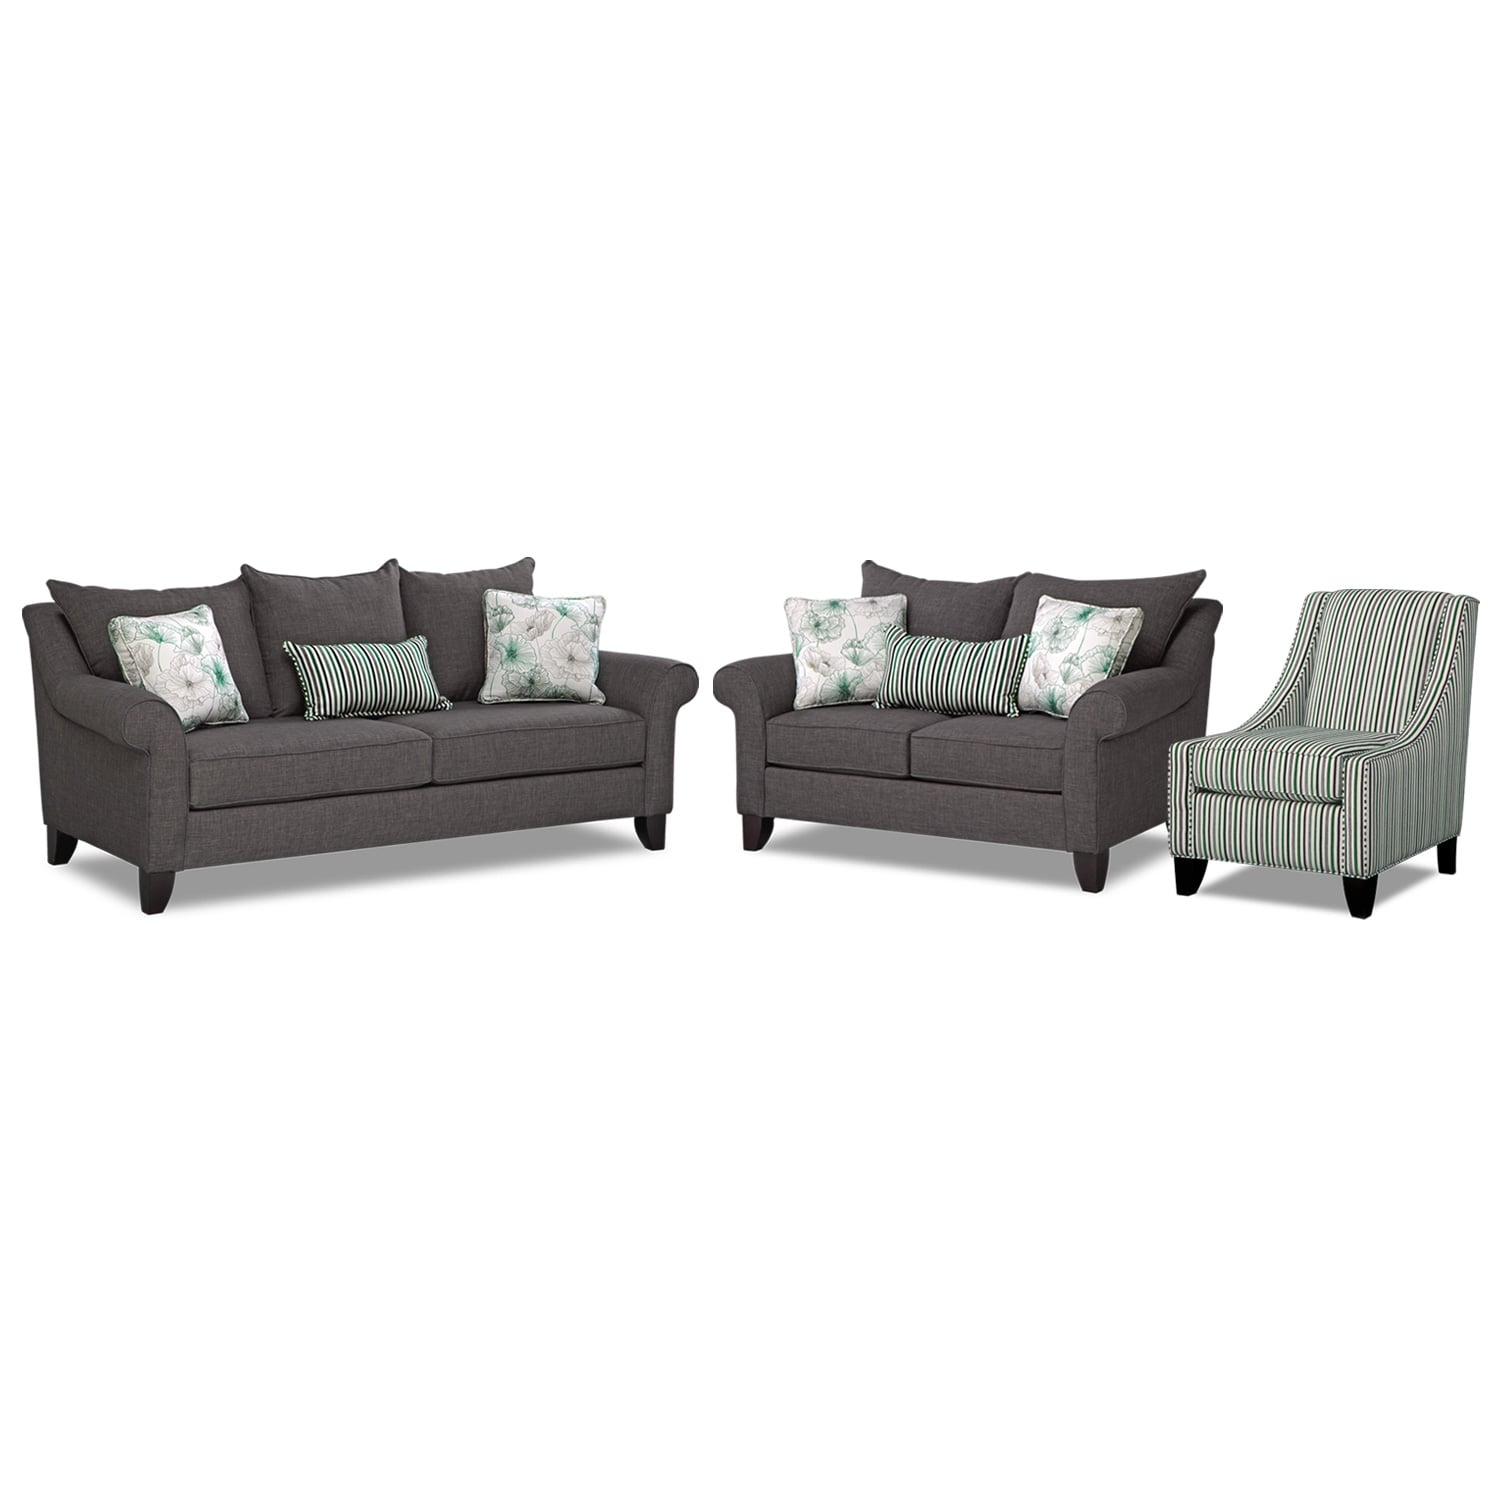 Jasmine 3 Pc. Sleeper Living Room with Accent Chair and Innerspring Mattress - Charcoal